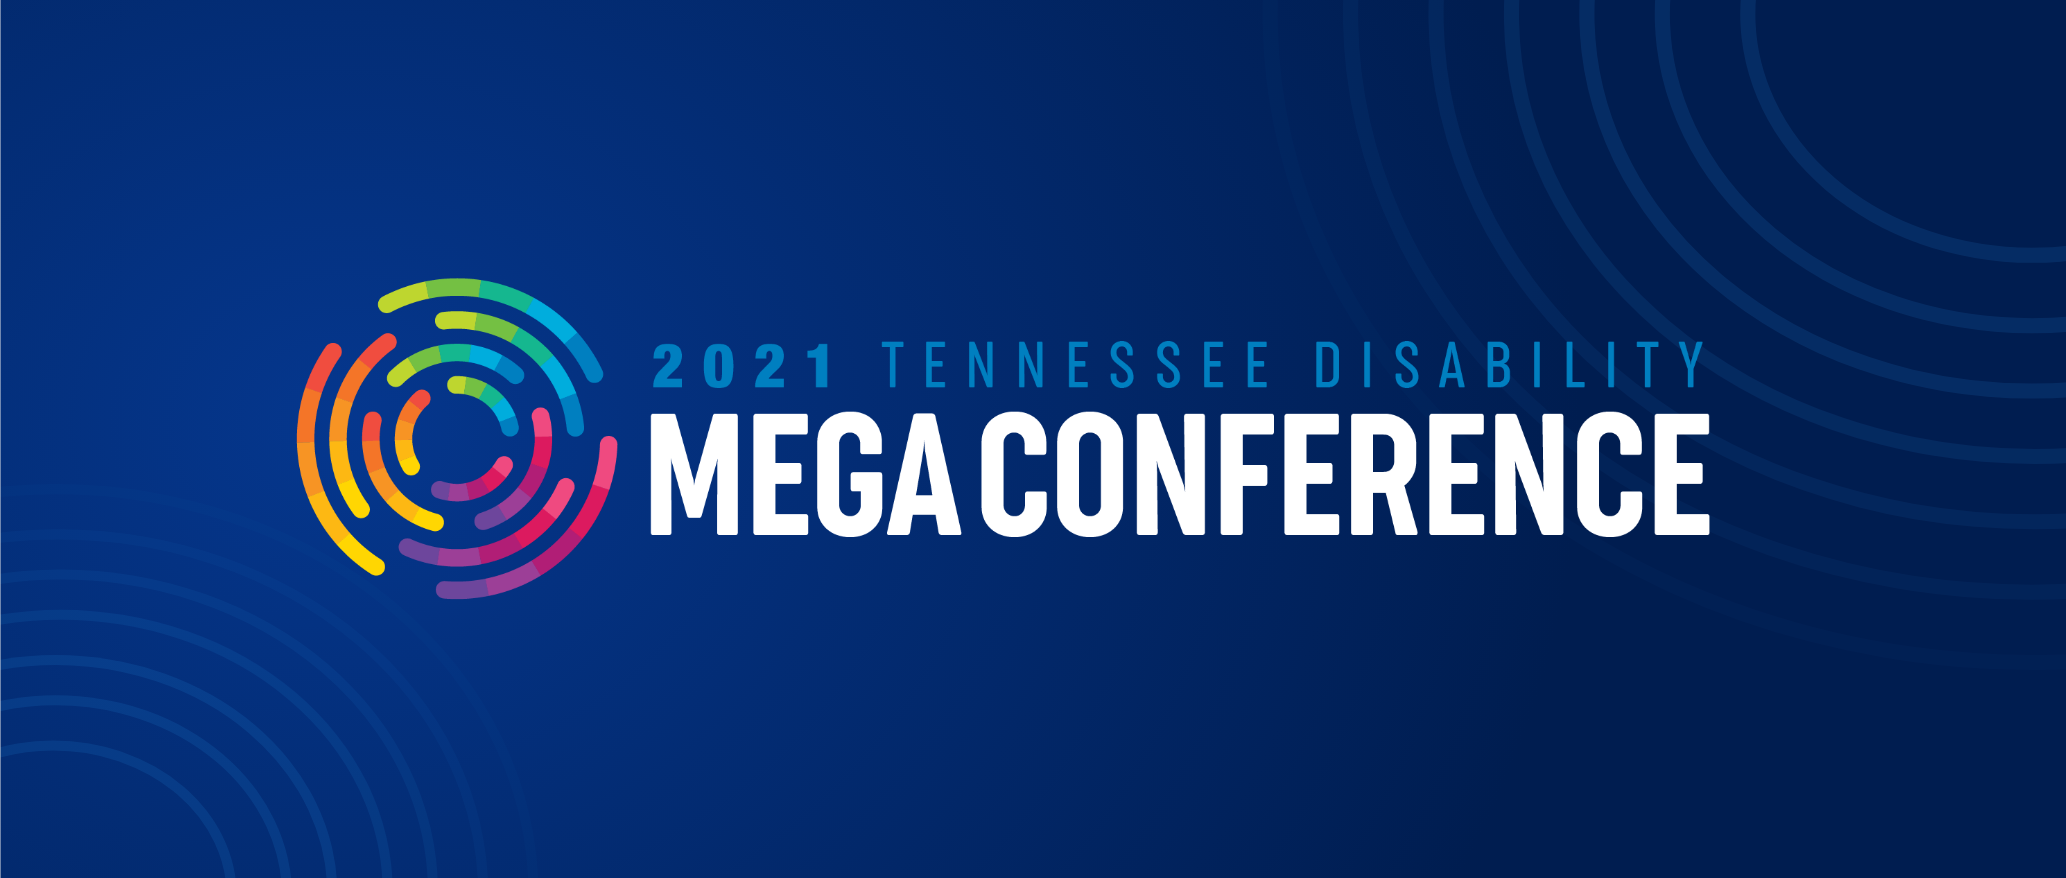 Tennessee Disability Mega Conference